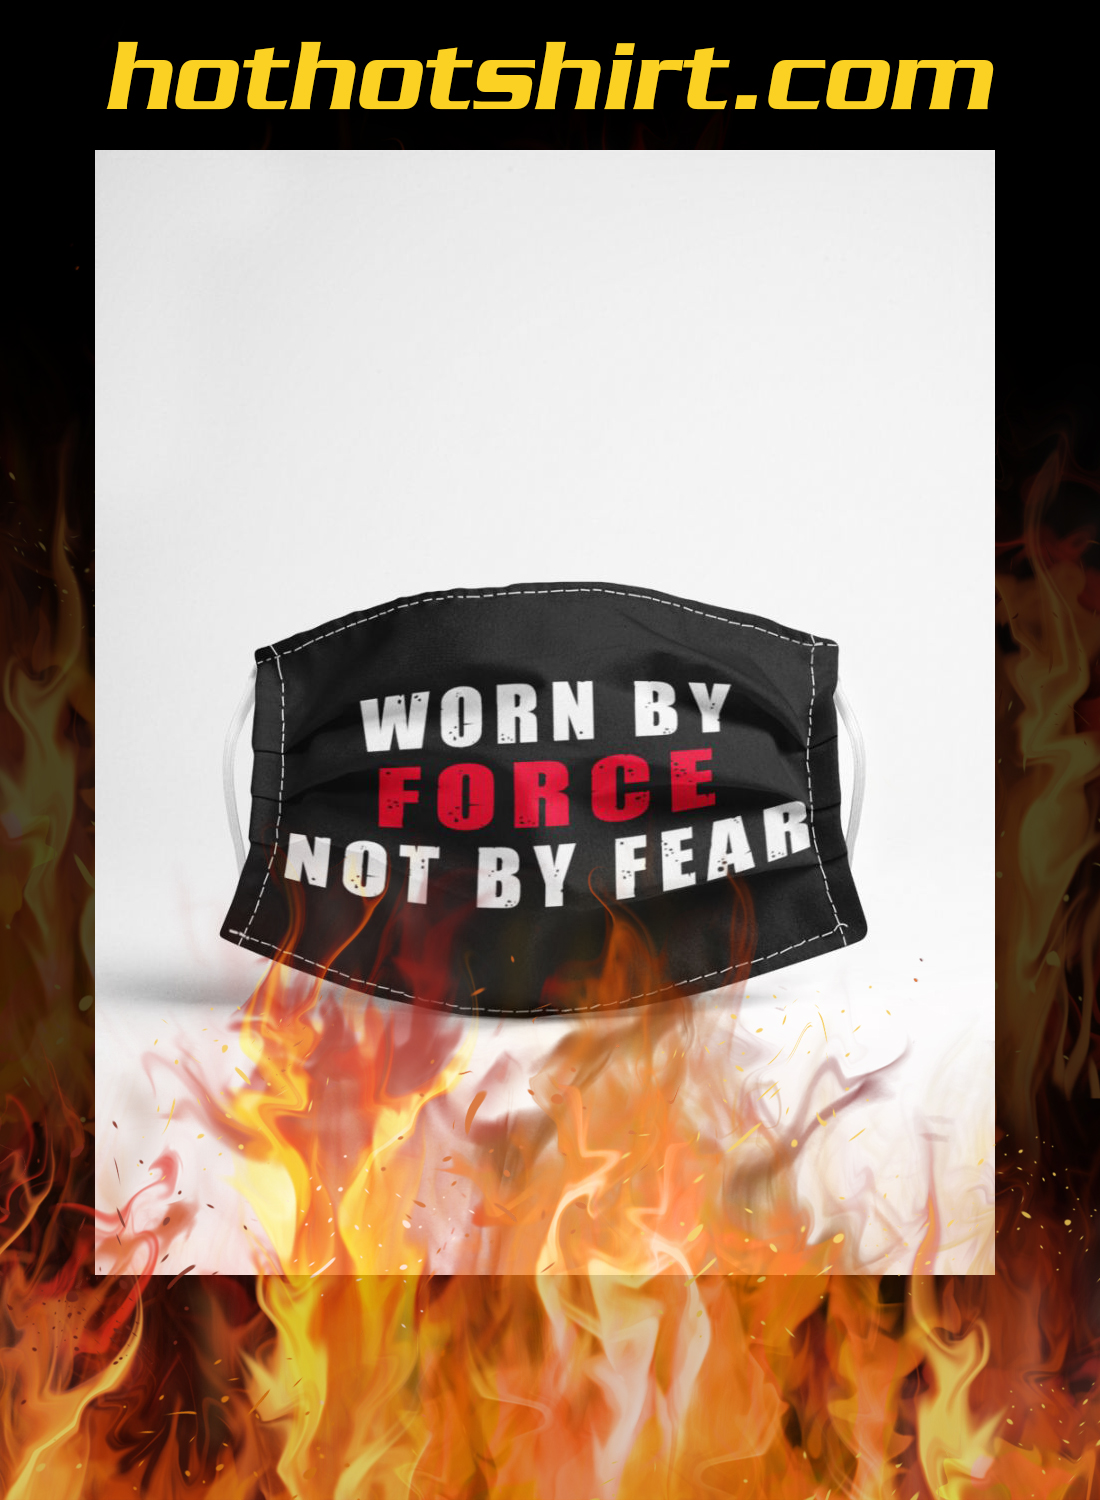 Face mask worn by force not be fear